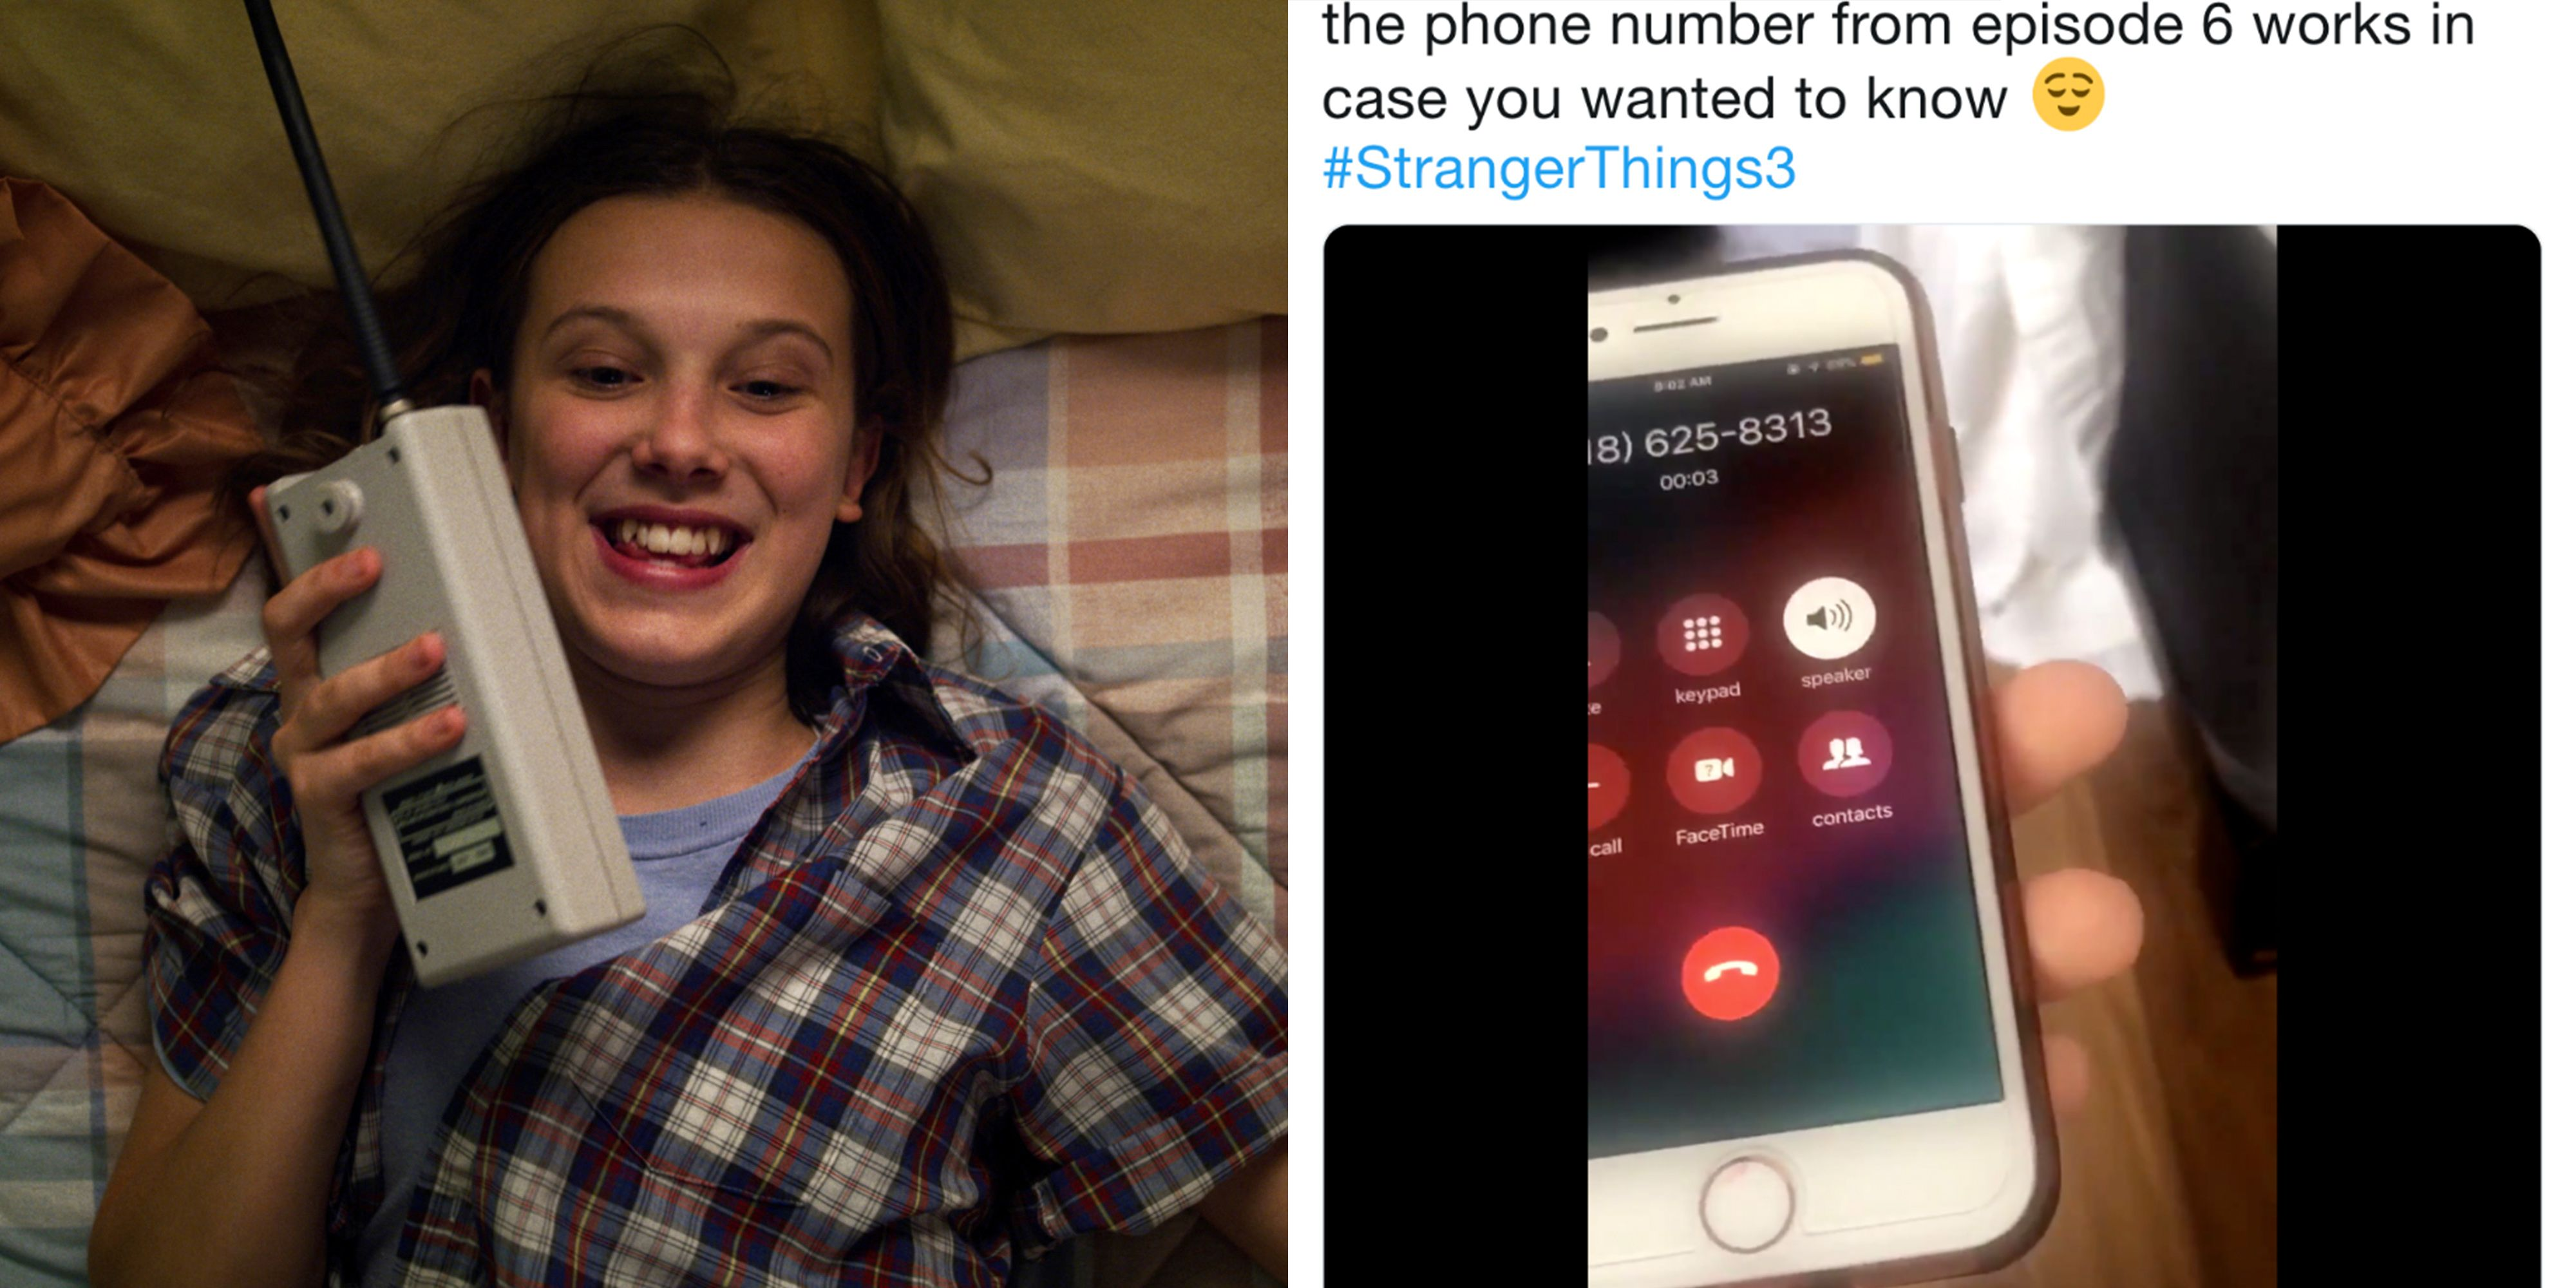 There's a Stranger Things 3 Easter Egg & It's a Real Phone Number